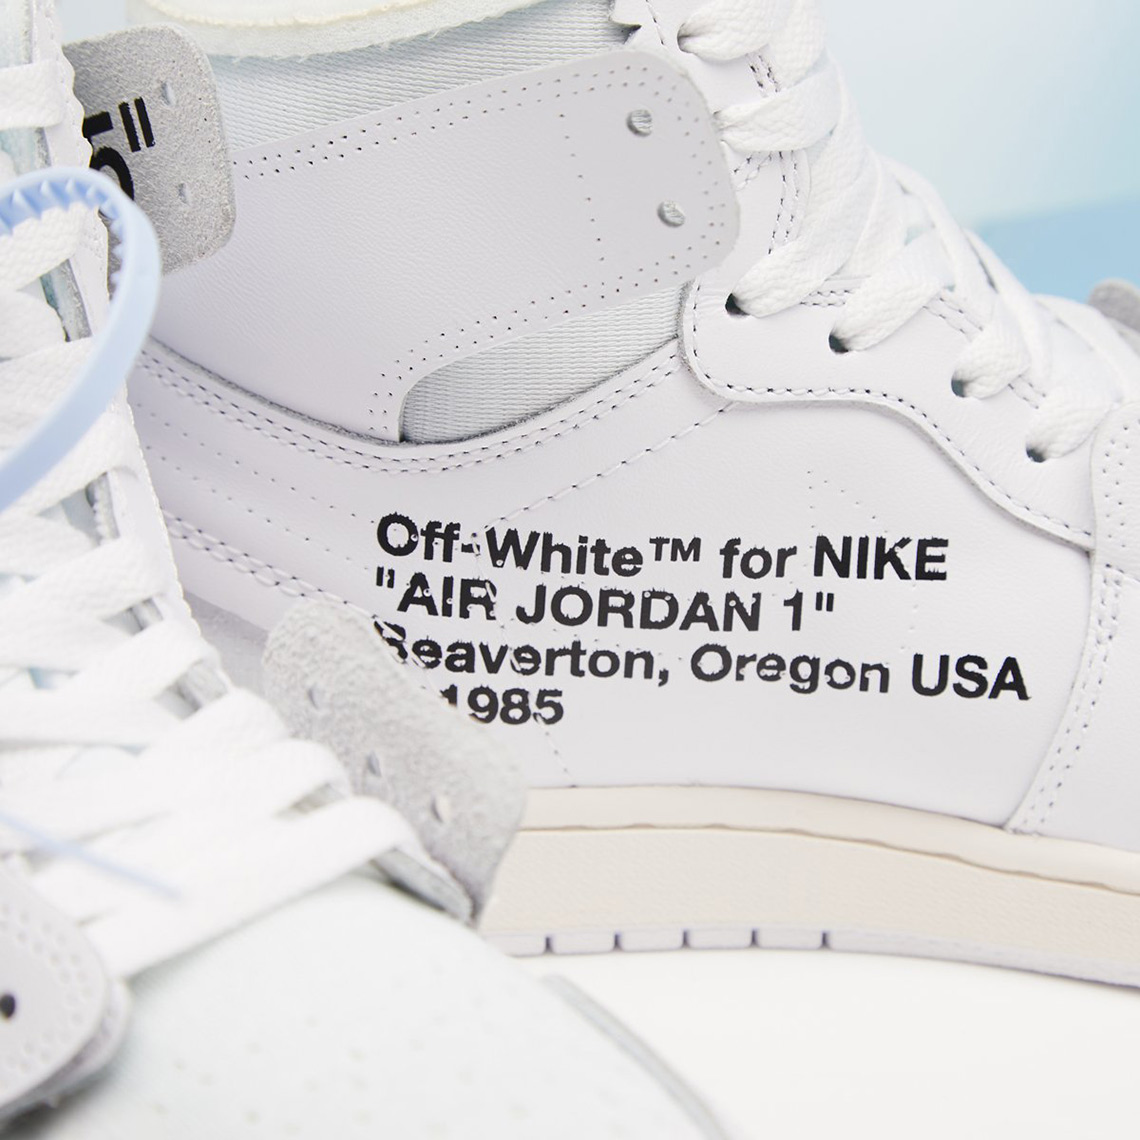 452f5f8e757 Store List For The OFF WHITE x Air Jordan 1 - SneakerNews.com